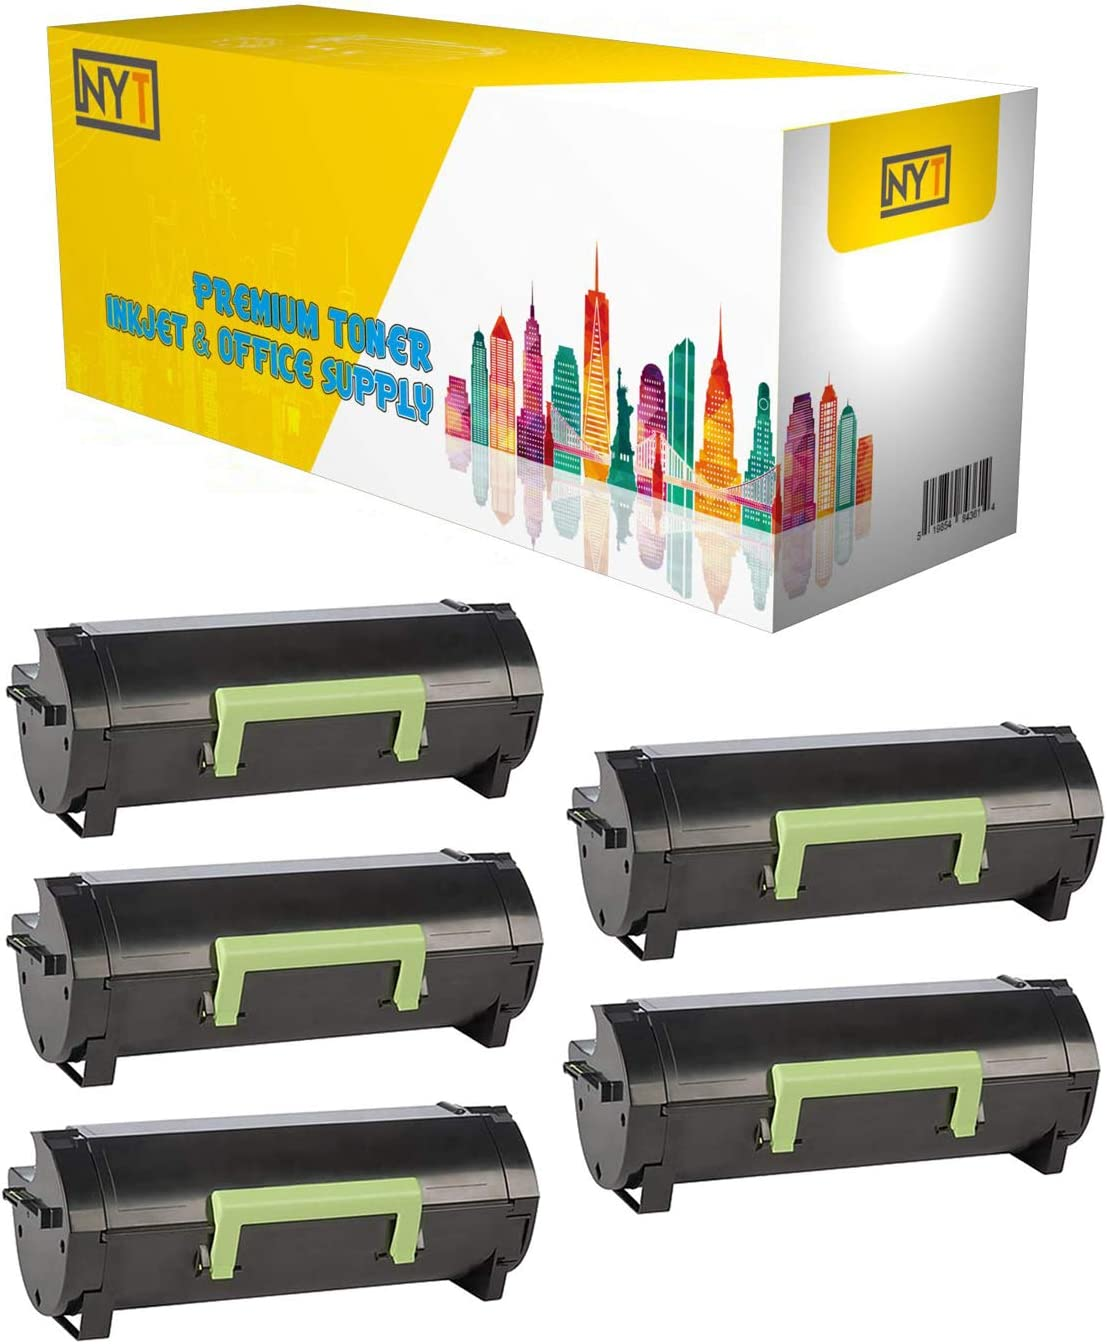 NYT Remanufactured Toner Cartridge Replacement for 600 600G 601 60F1000 60F100G for Lexmark MX310 Made in USA. MX511 MX610 Black, 5-Pack MX510 MX611 MX410